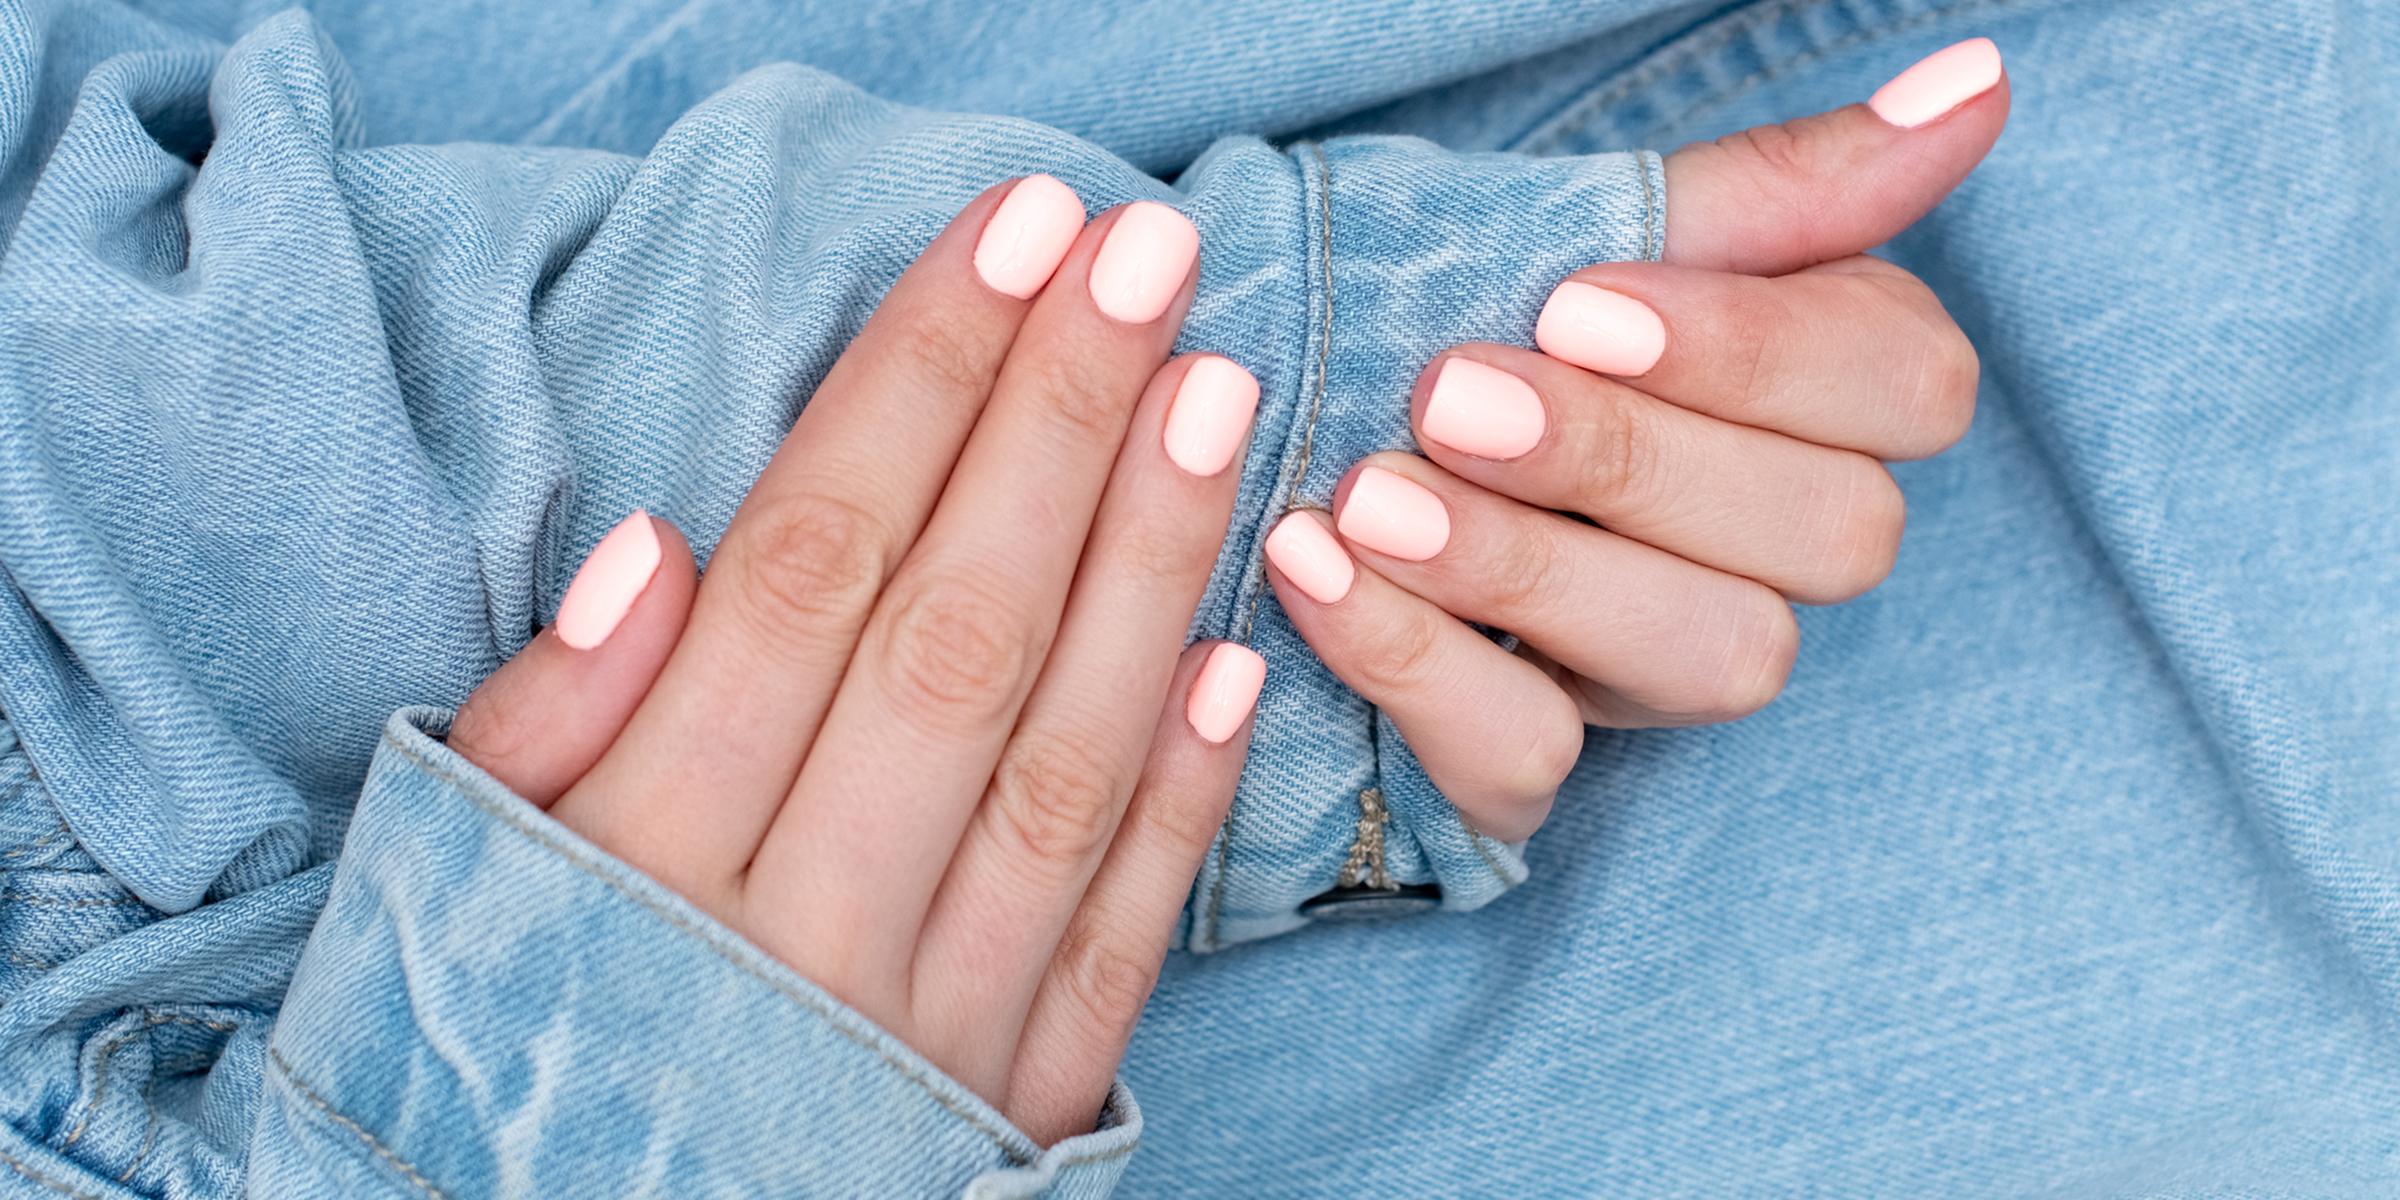 6 Products To Help Boost Hand And Nail Health This Winter